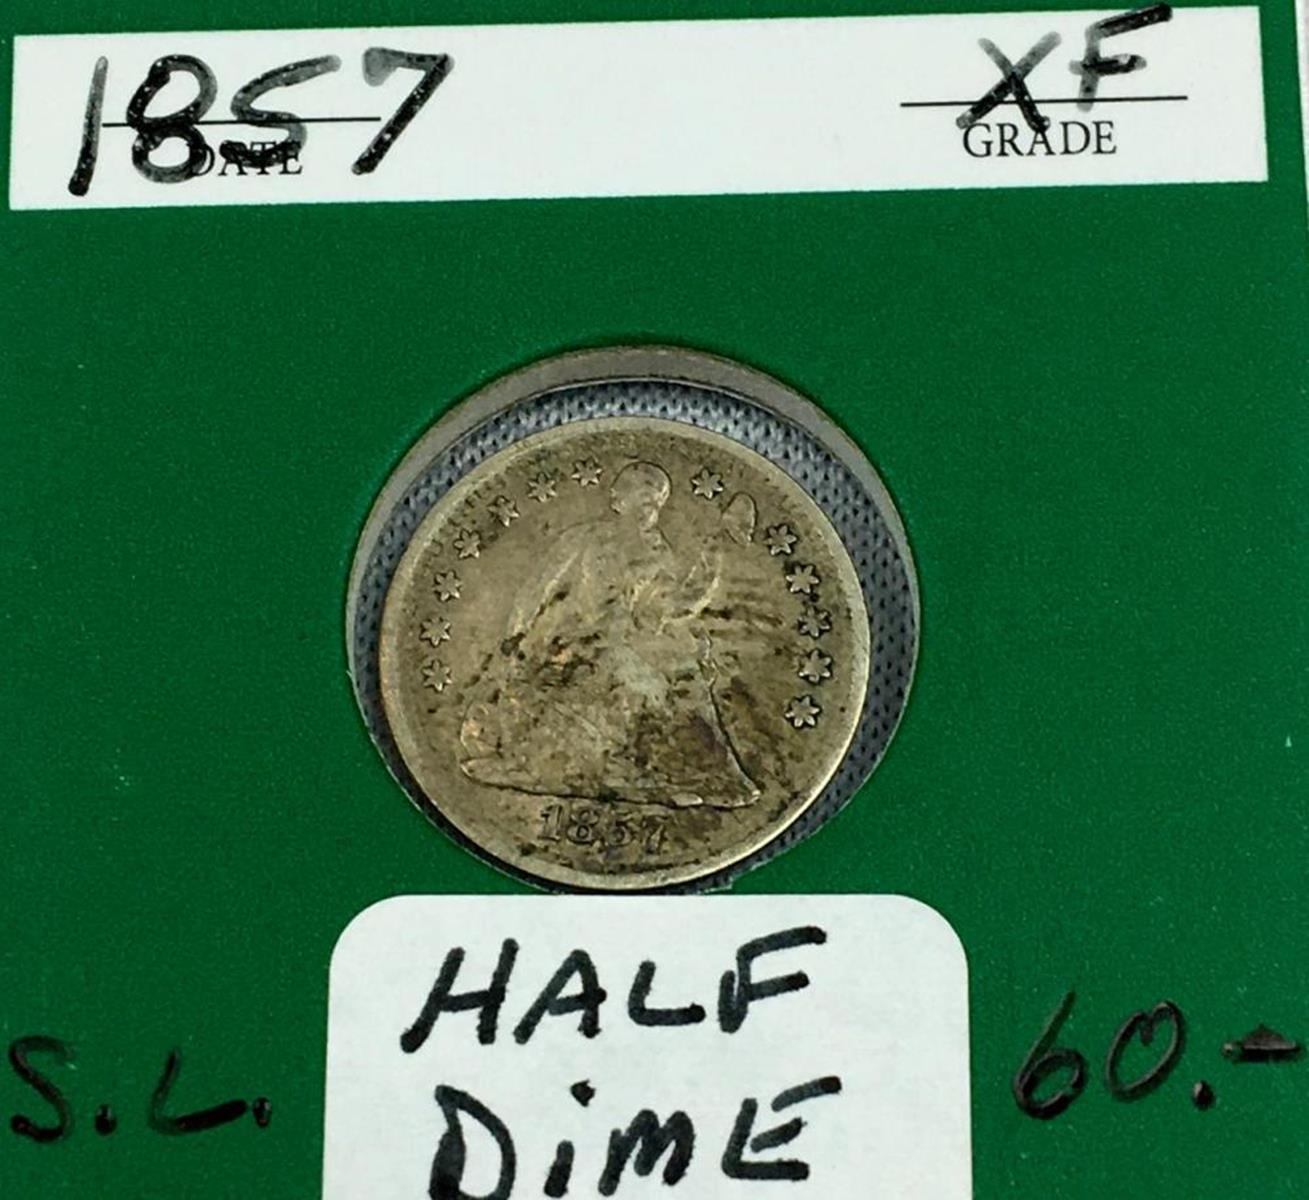 1857 US 5c Seated Liberty Silver Half Dime W/ Case